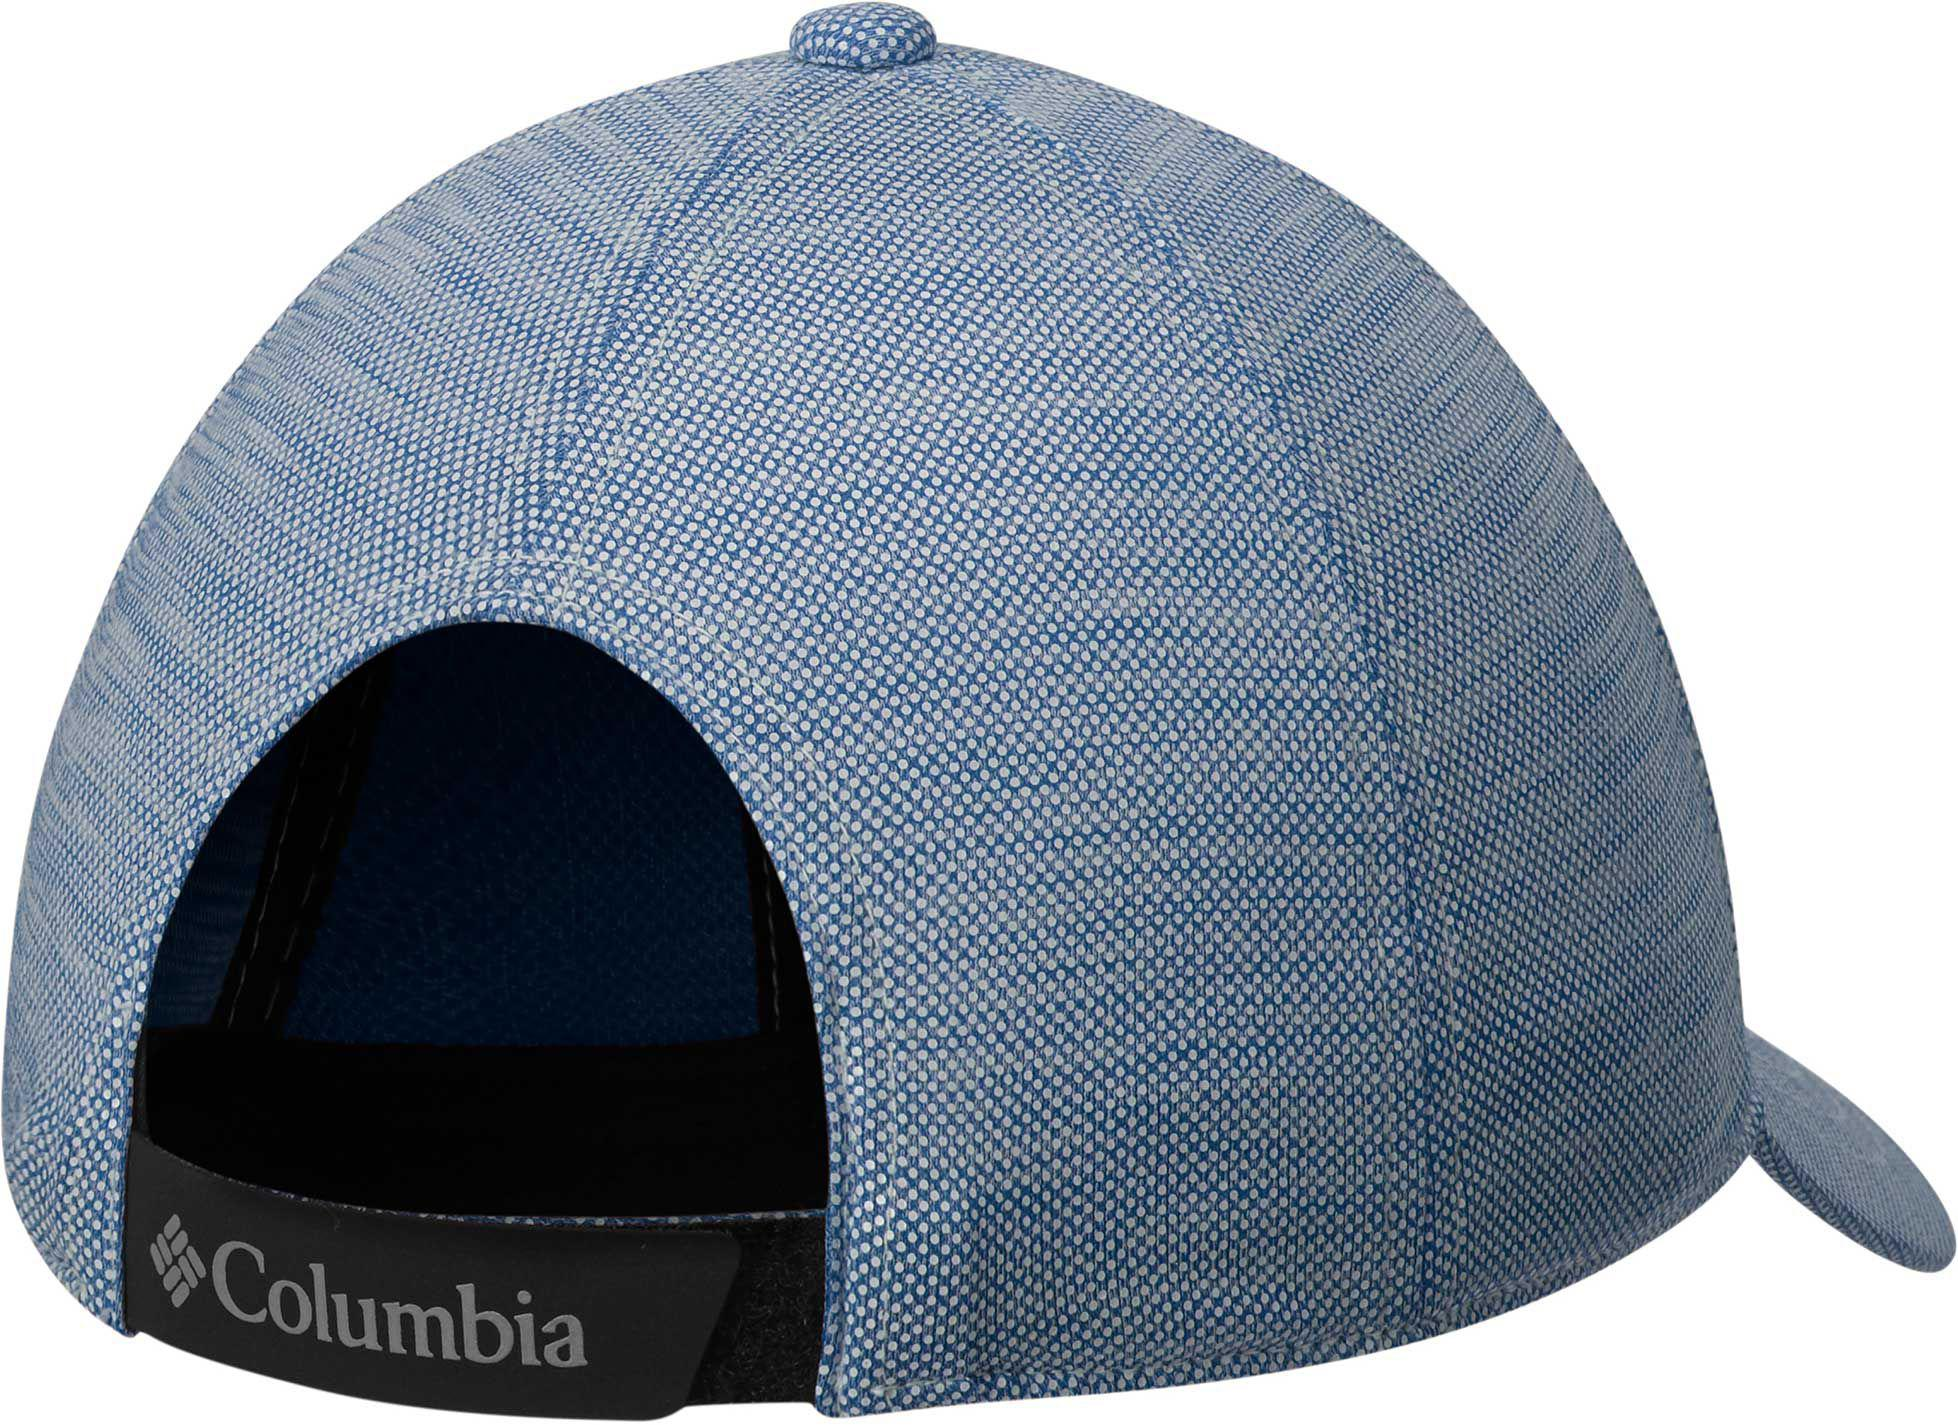 Lyst - Columbia Adult Solar Chill Pfg Hat in Blue for Men 7e27f1d3ced6